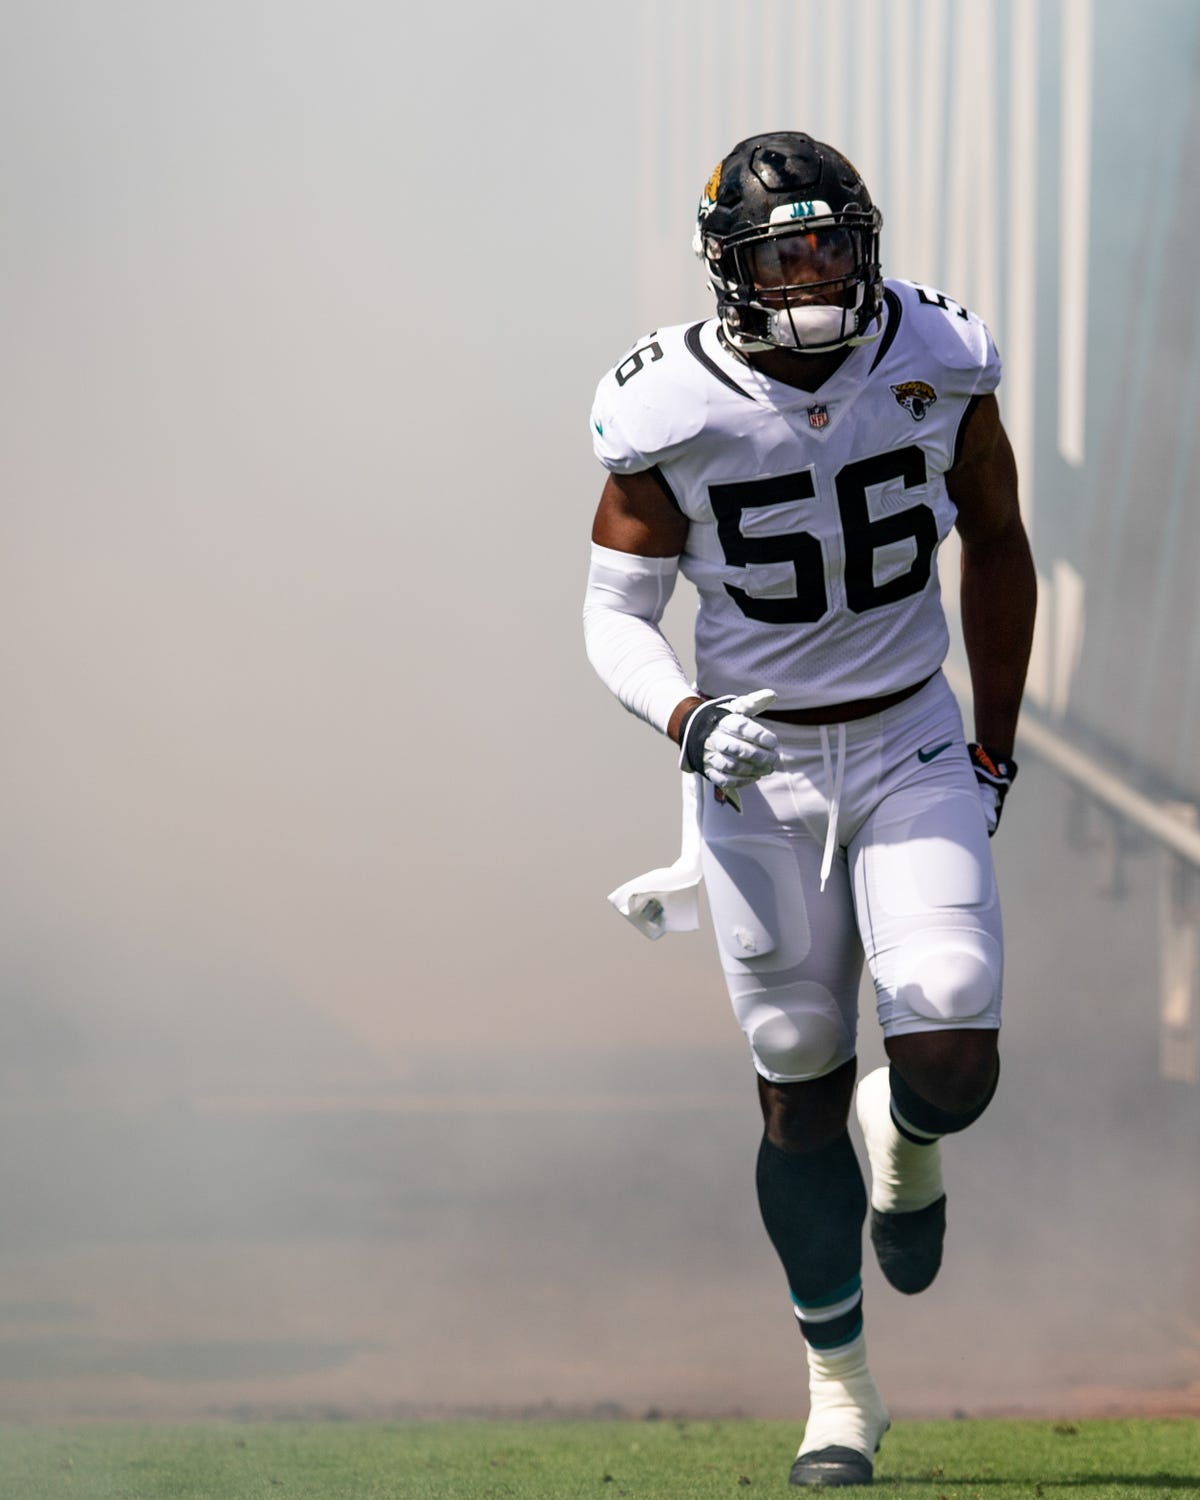 promo code 8f91b 9b6b4 Los Angeles Rams trade for Dante Fowler in deal with Jaguars